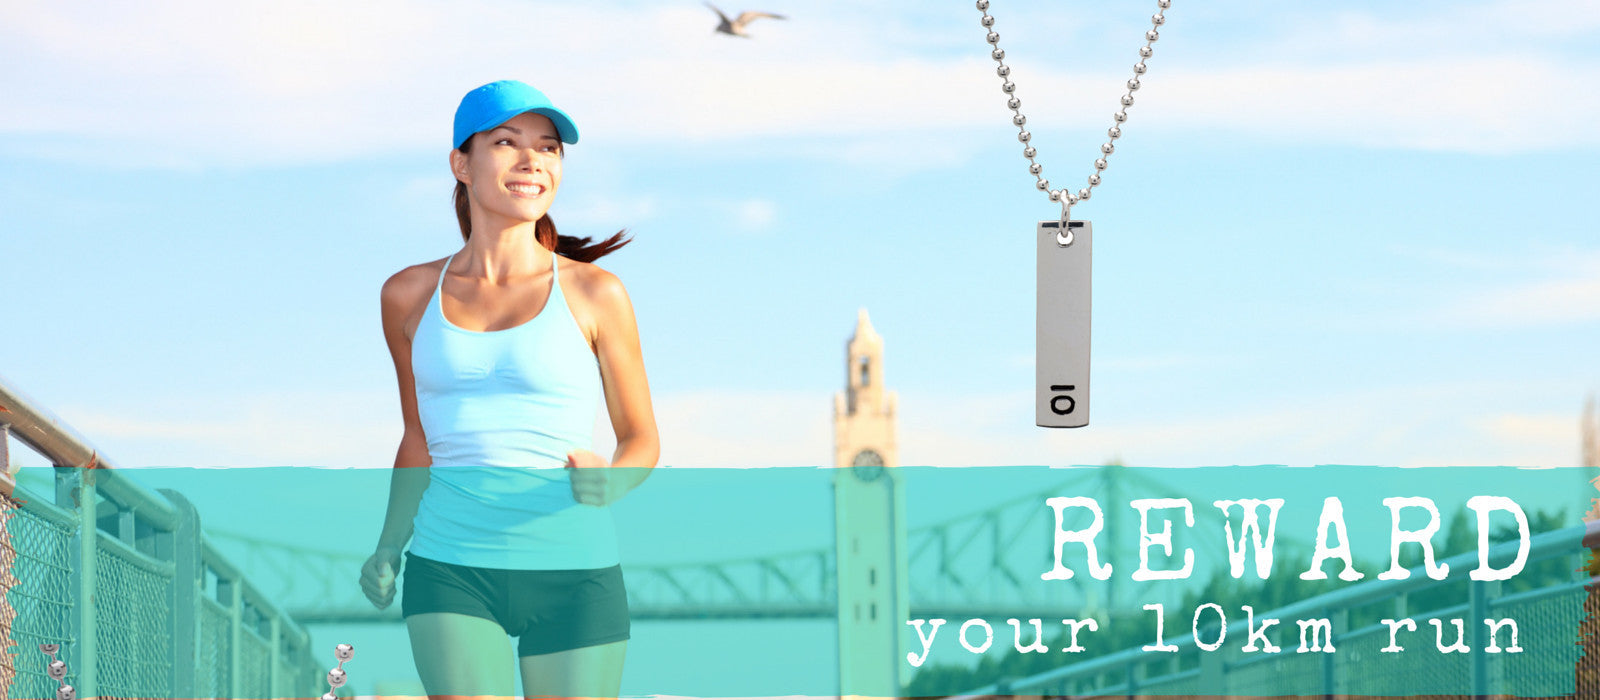 Running Jewellery Reward you 10km run